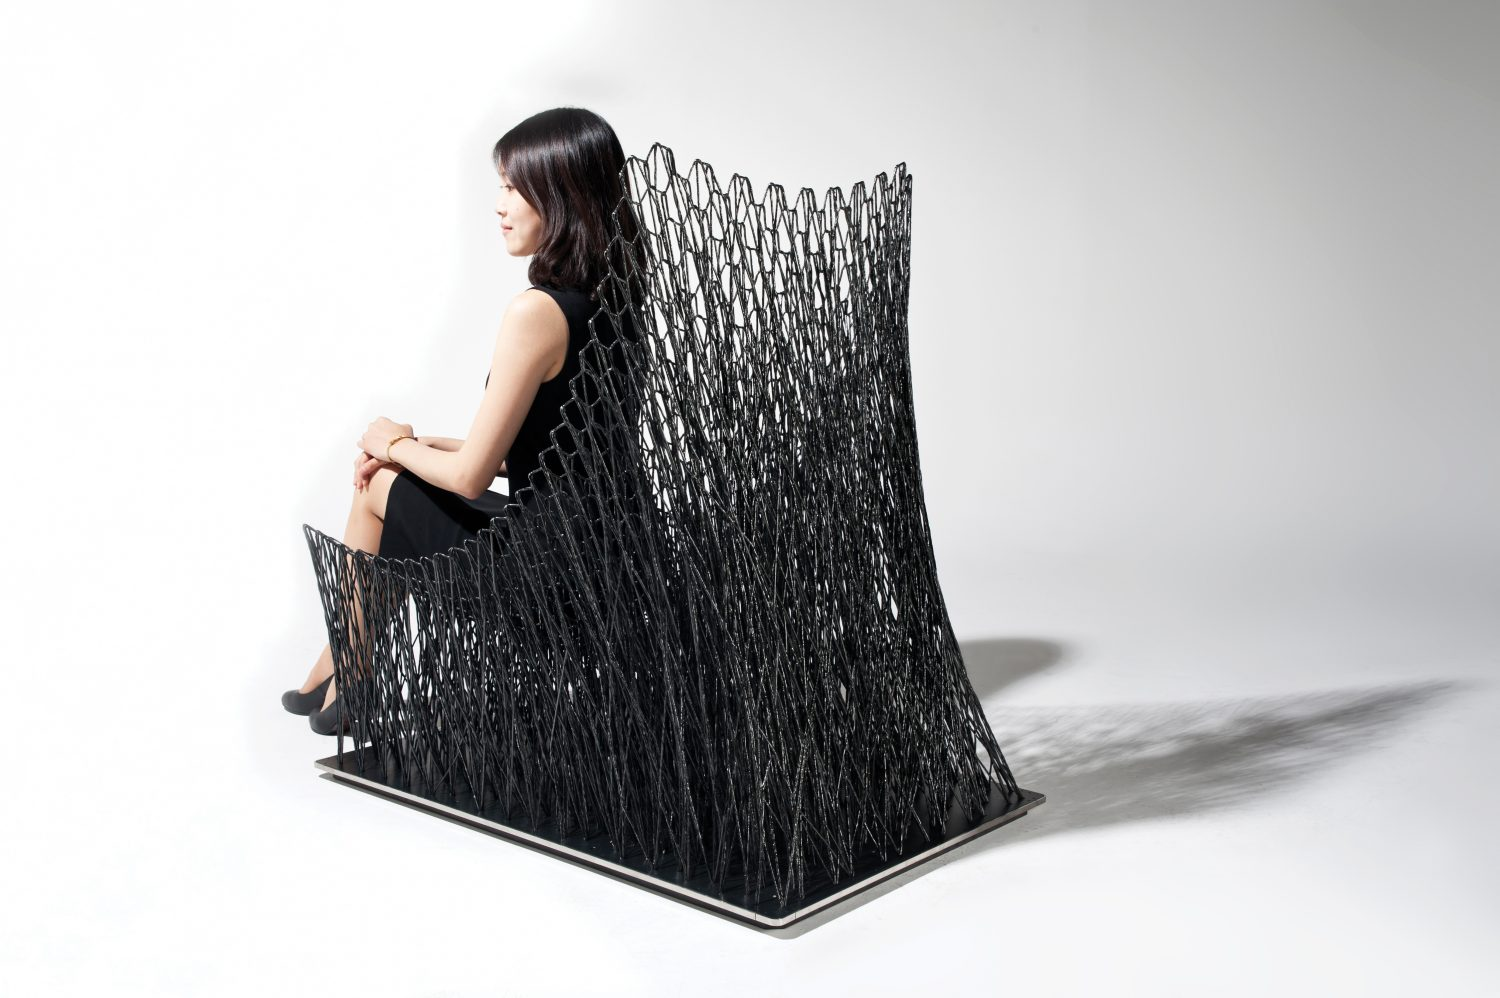 armchair at Biennale Internationale Design Saint-Étienne 2019 biennale internationale design saint-Étienne 2019 BIENNALE INTERNATIONALE DESIGN SAINT-ÉTIENNE 2019 EVENT GUIDE Luno Armchair